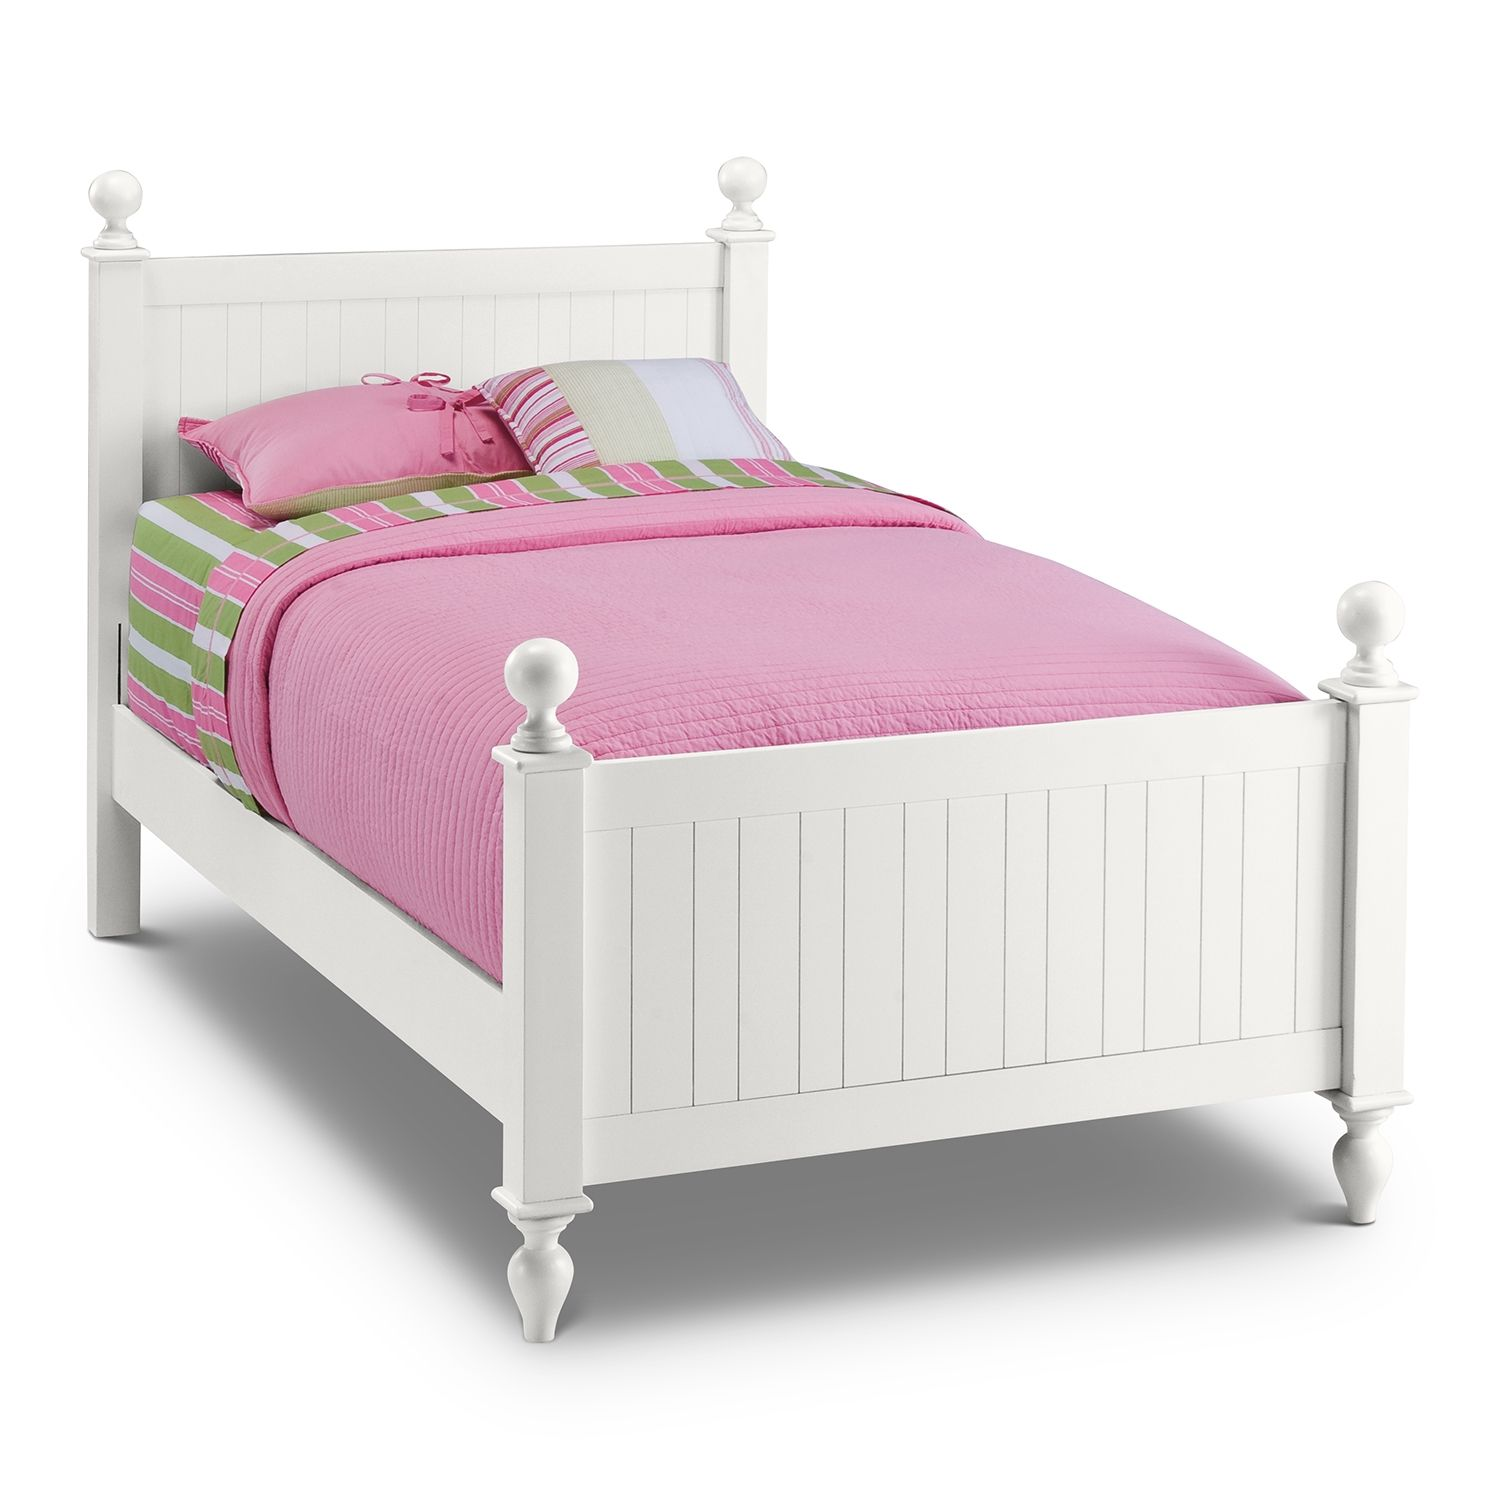 Awesome white twin bed for your kids bedroom headboards for Images of beds for bedroom